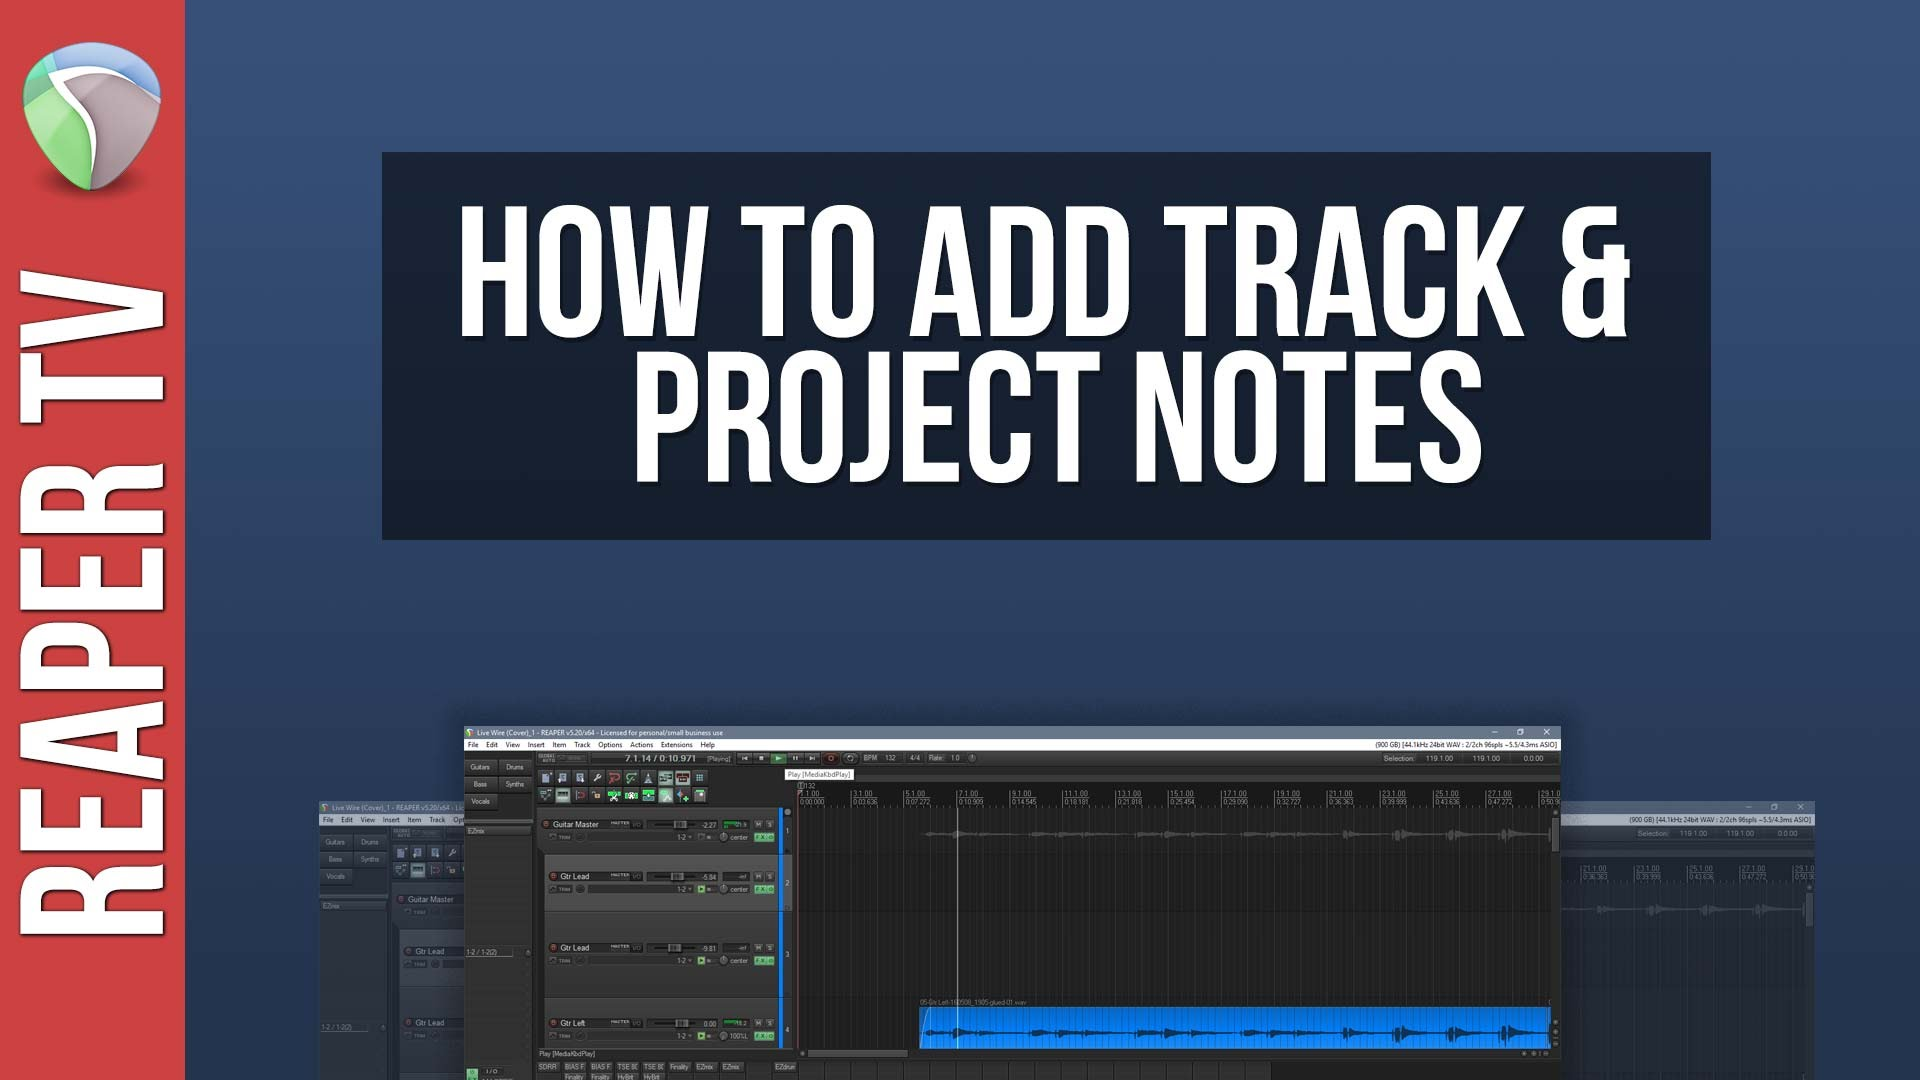 How to add Project and Track Notes in Reaper DAW